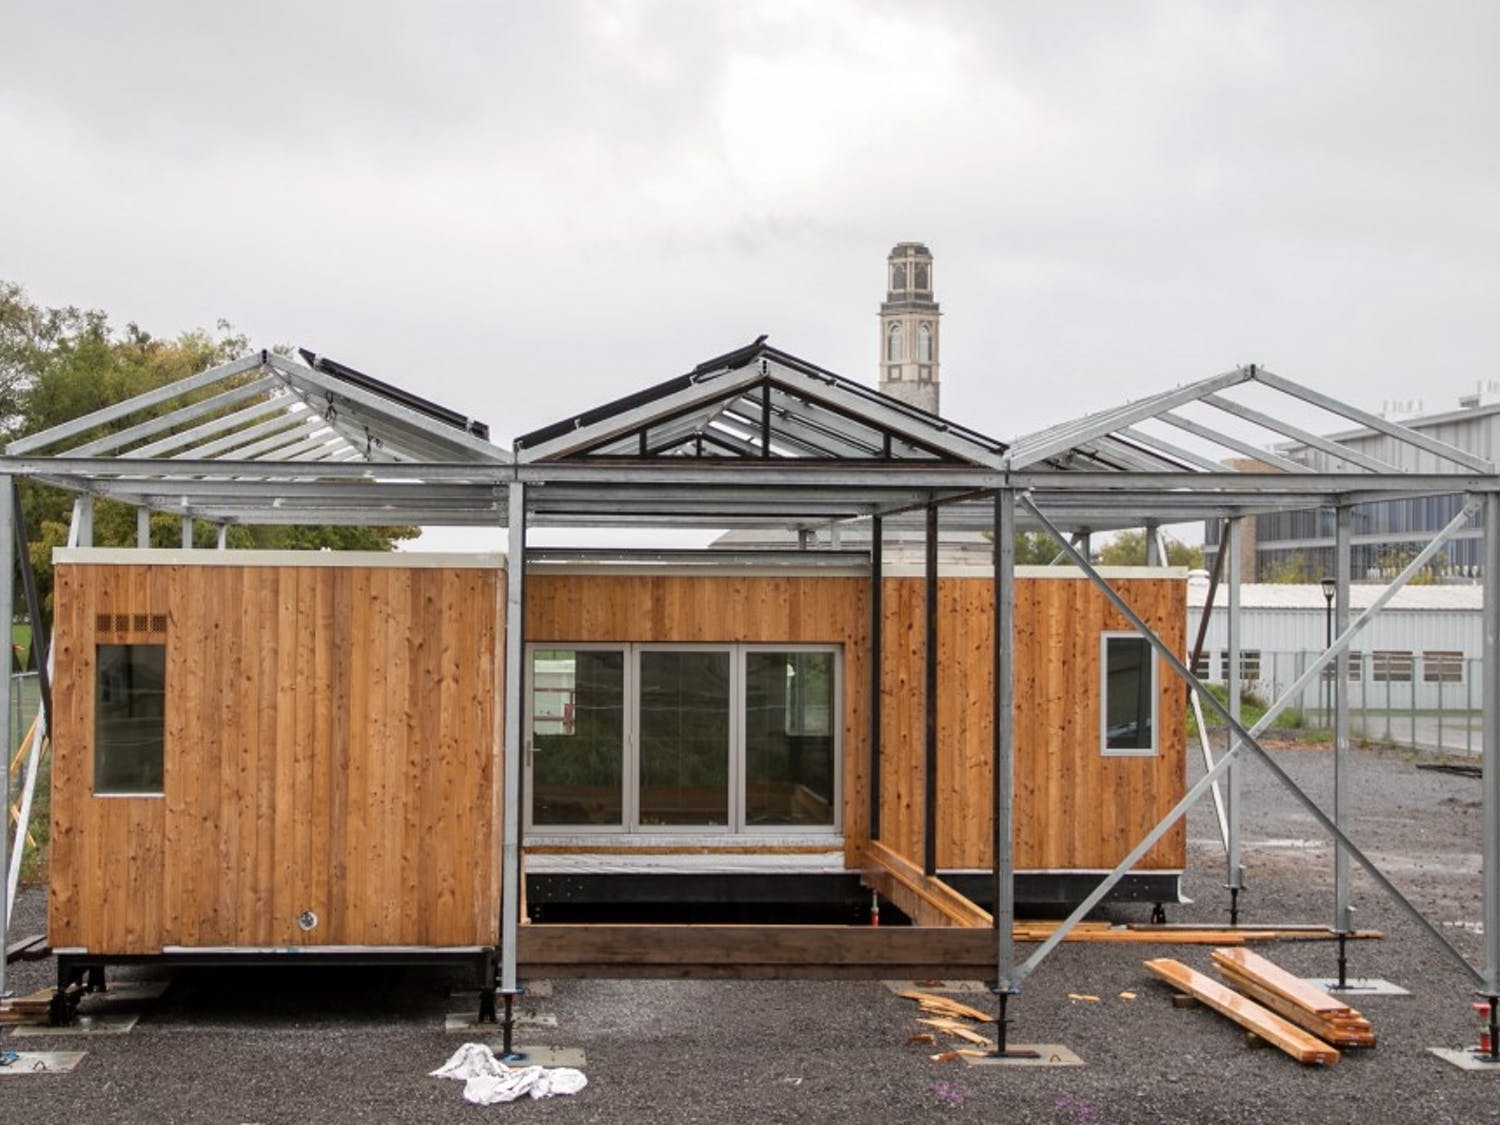 After making its 2,500 mile journey from Irvine, California, UB's award winning GRoW Home is being reconstructed on South Campus, adjacent from Haynes Hall.